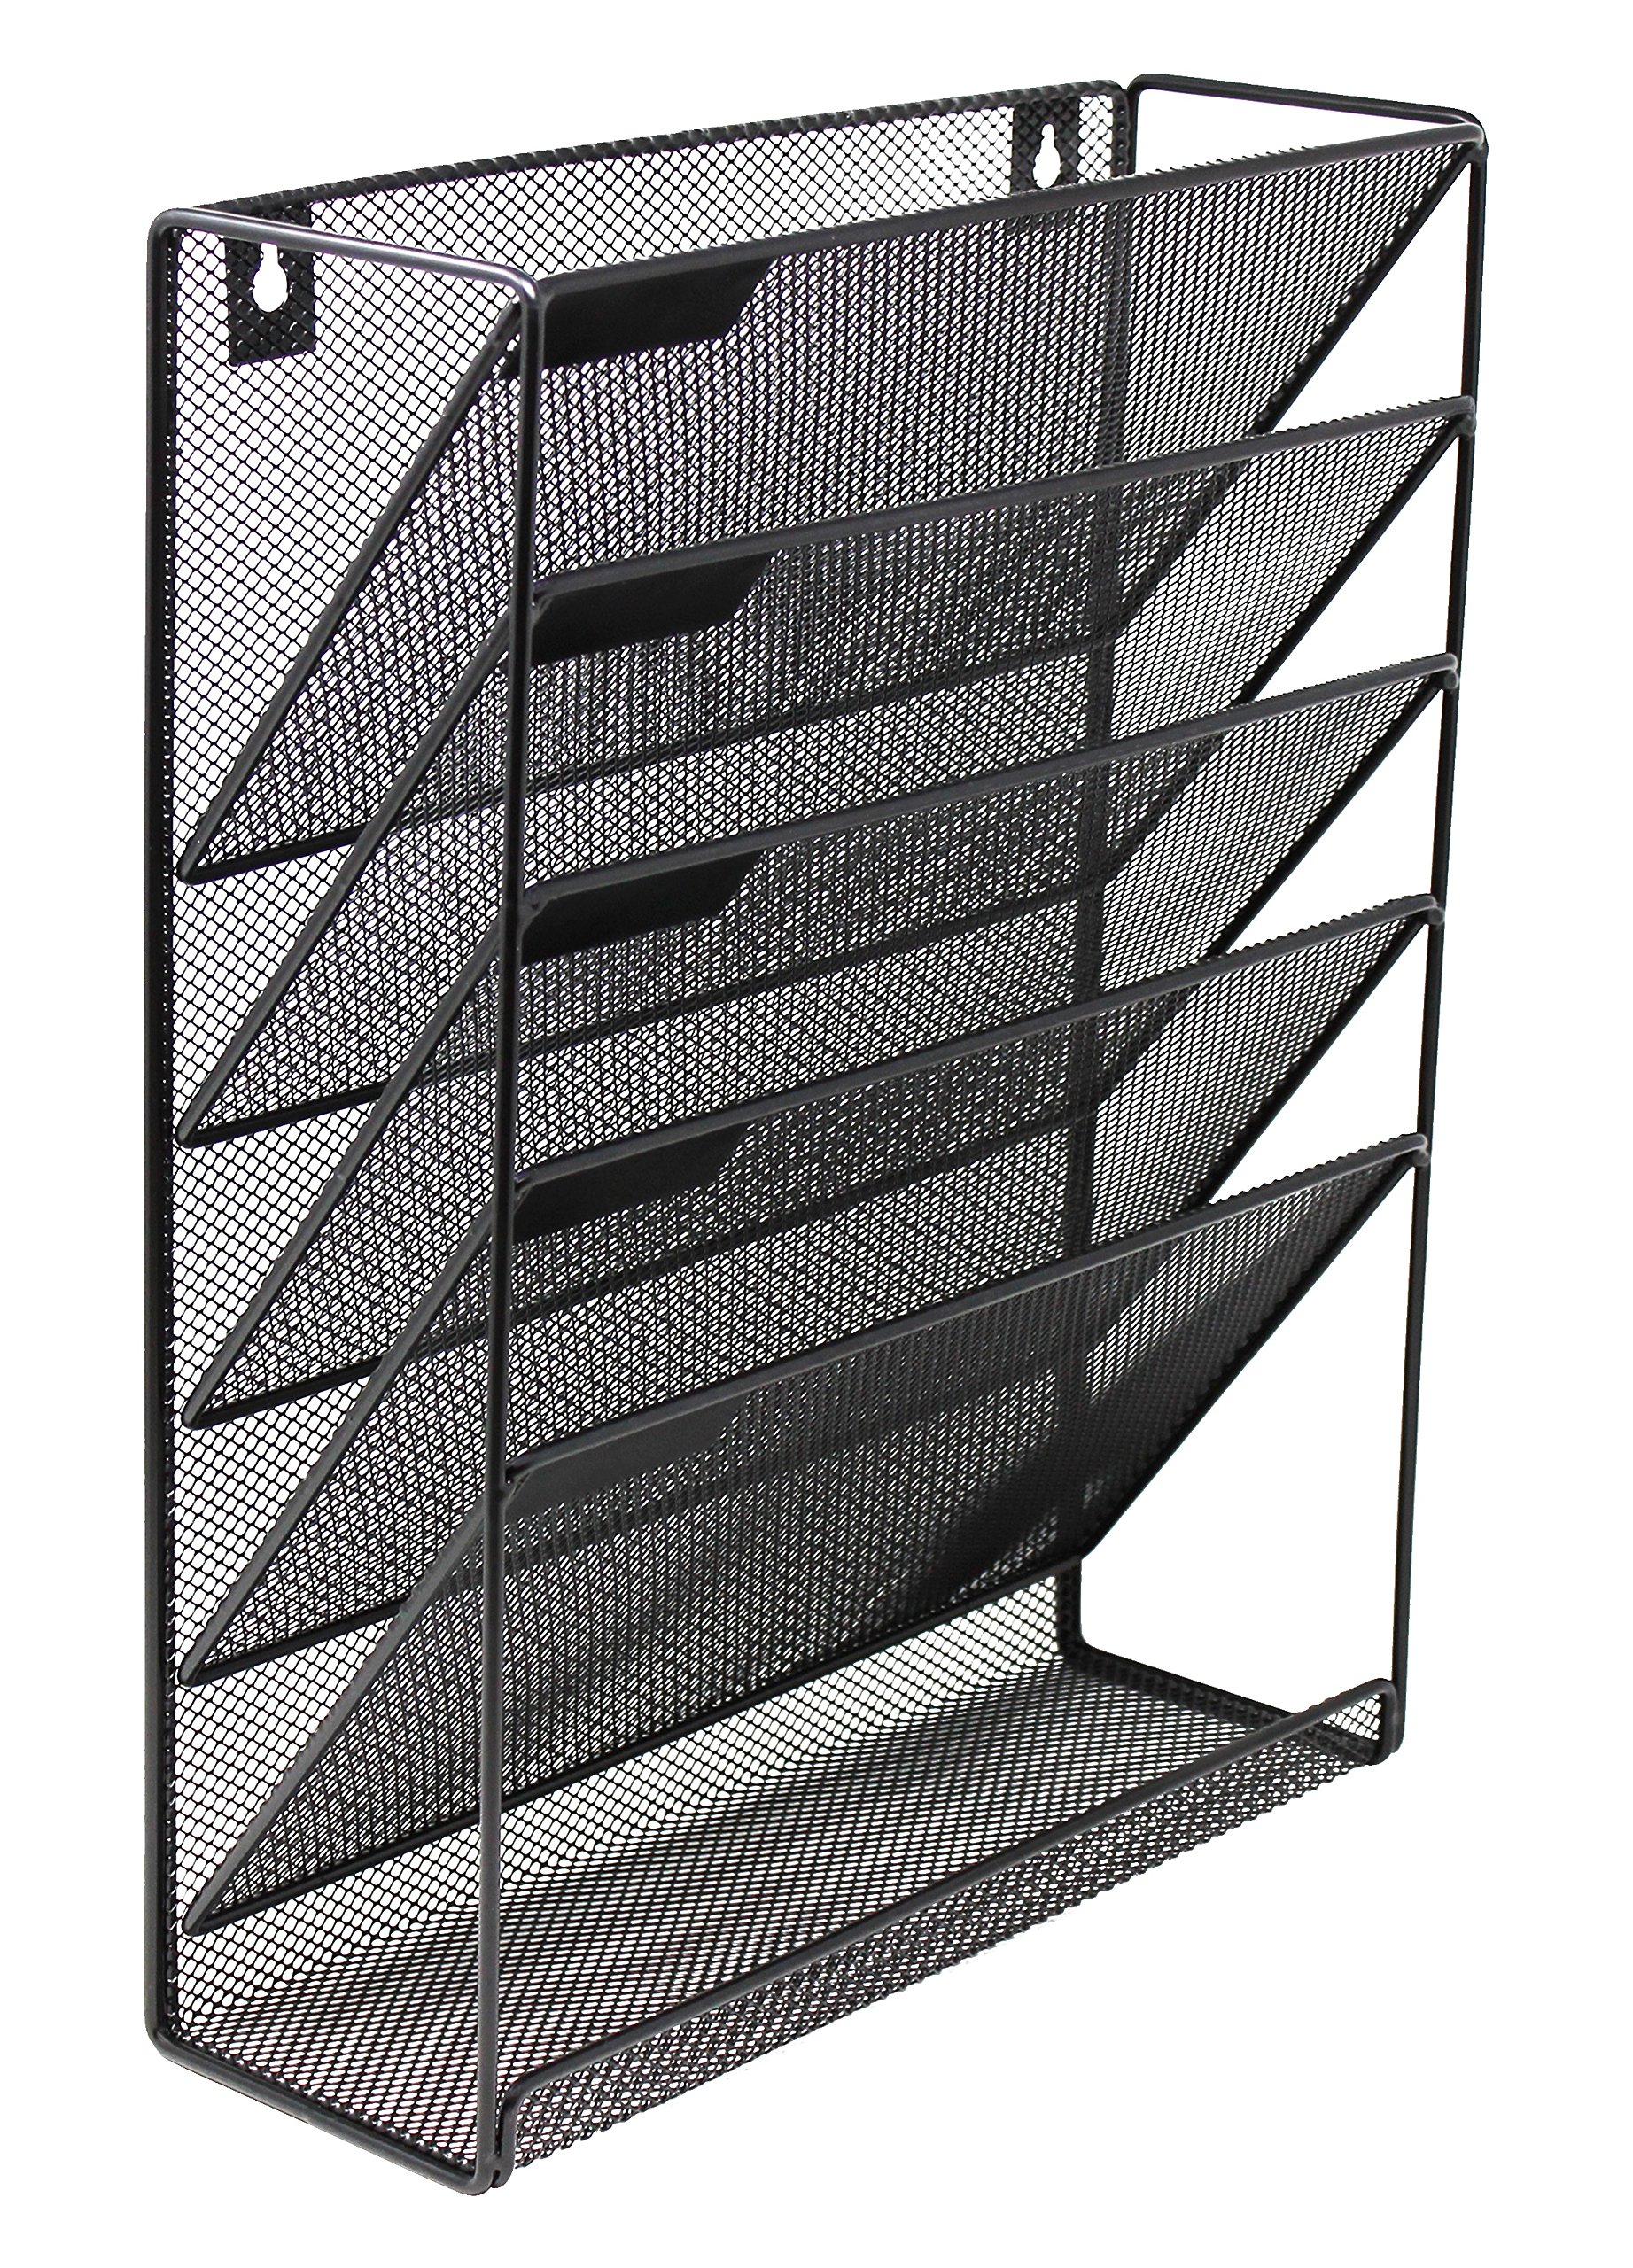 Mesh Wall Mounted Hanging Document & File Organizer - 5 Compartment Vertical Magazine Rack & Mail Sorter/Holder Tray - Black…